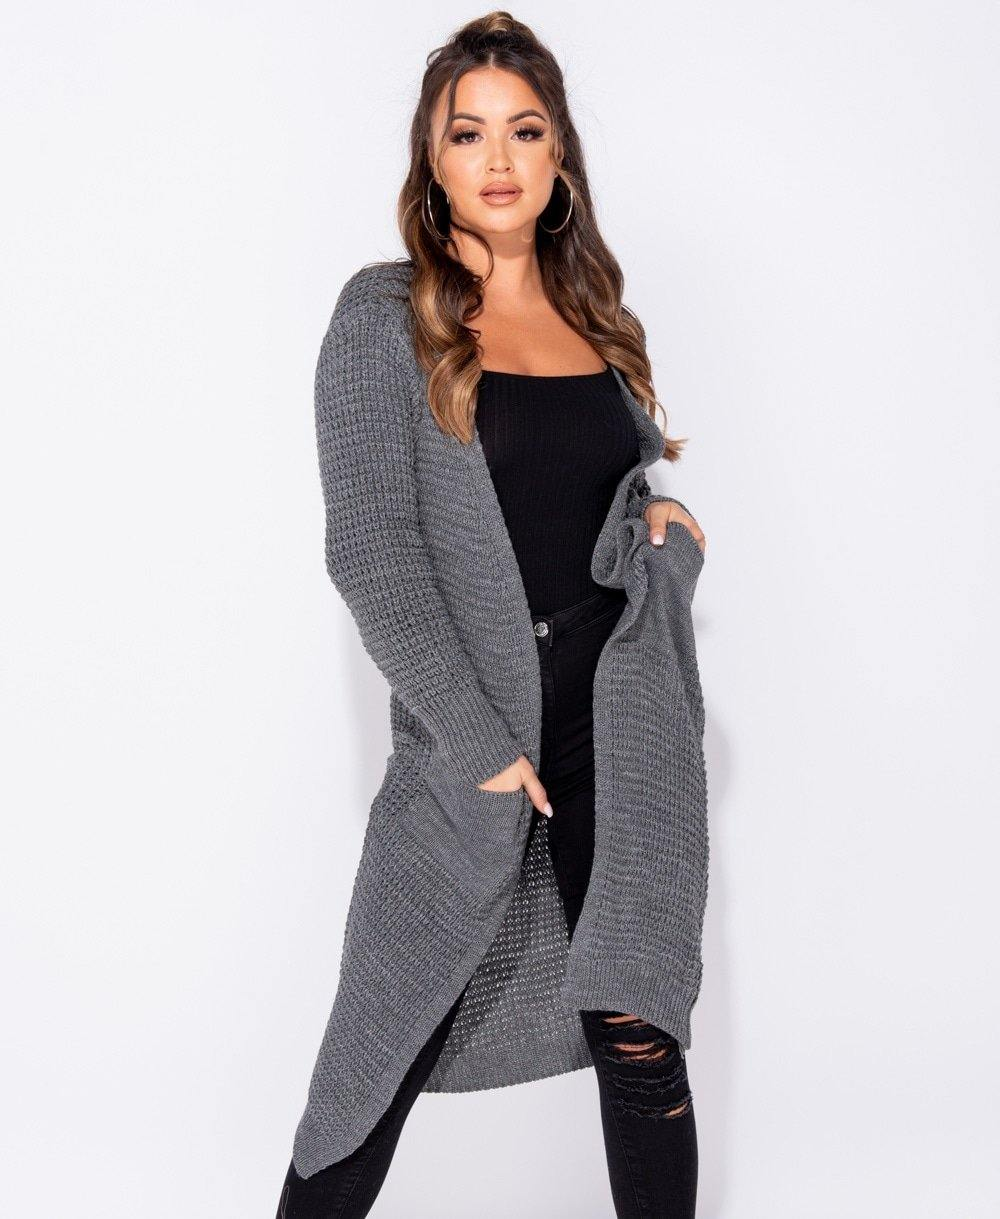 Ladies long sleeved, long length knit cardigan sweater in grey color with pockets